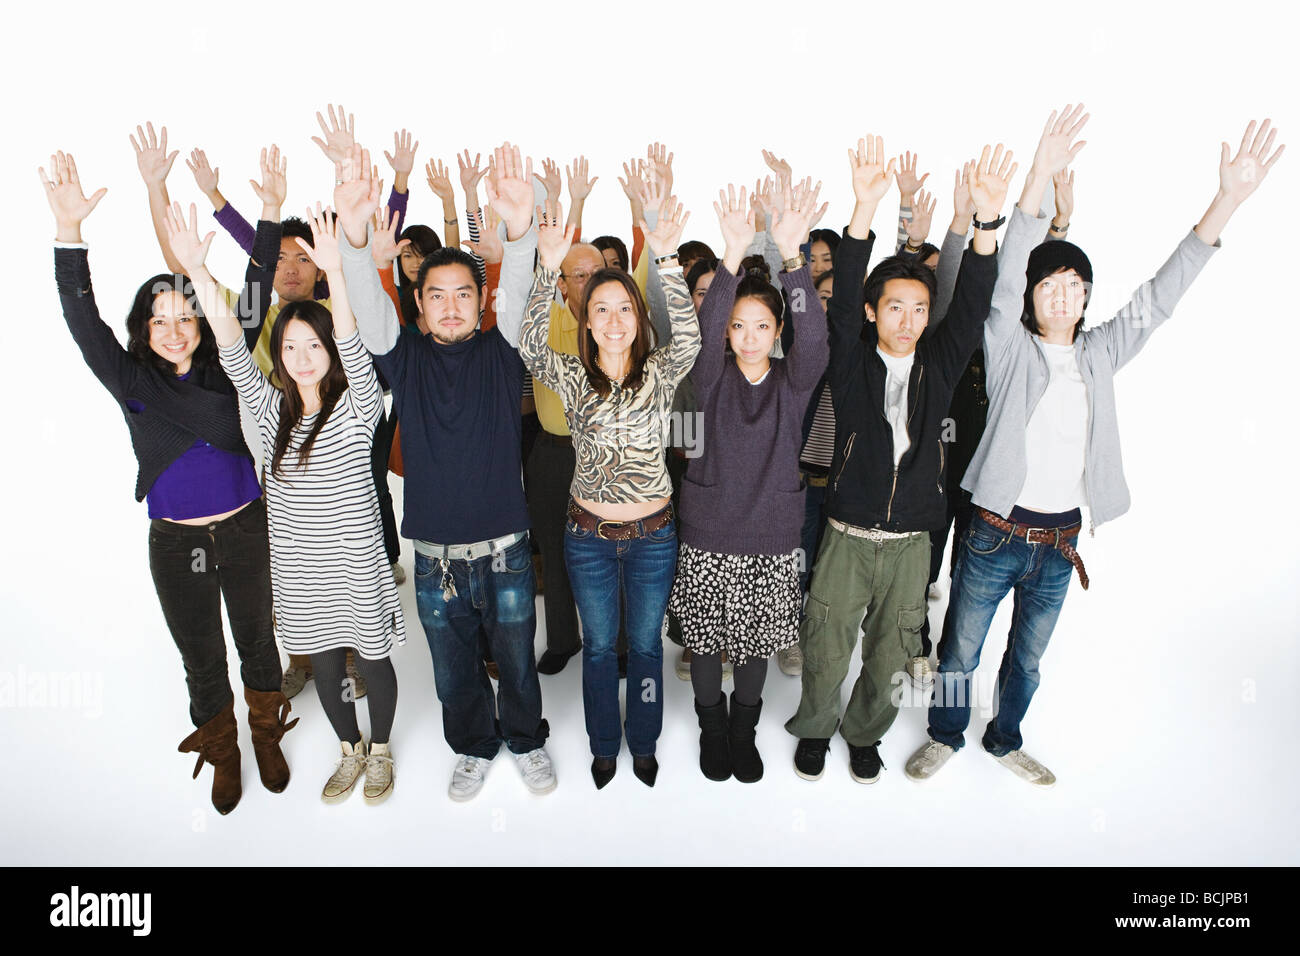 People with arms raised Stock Photo